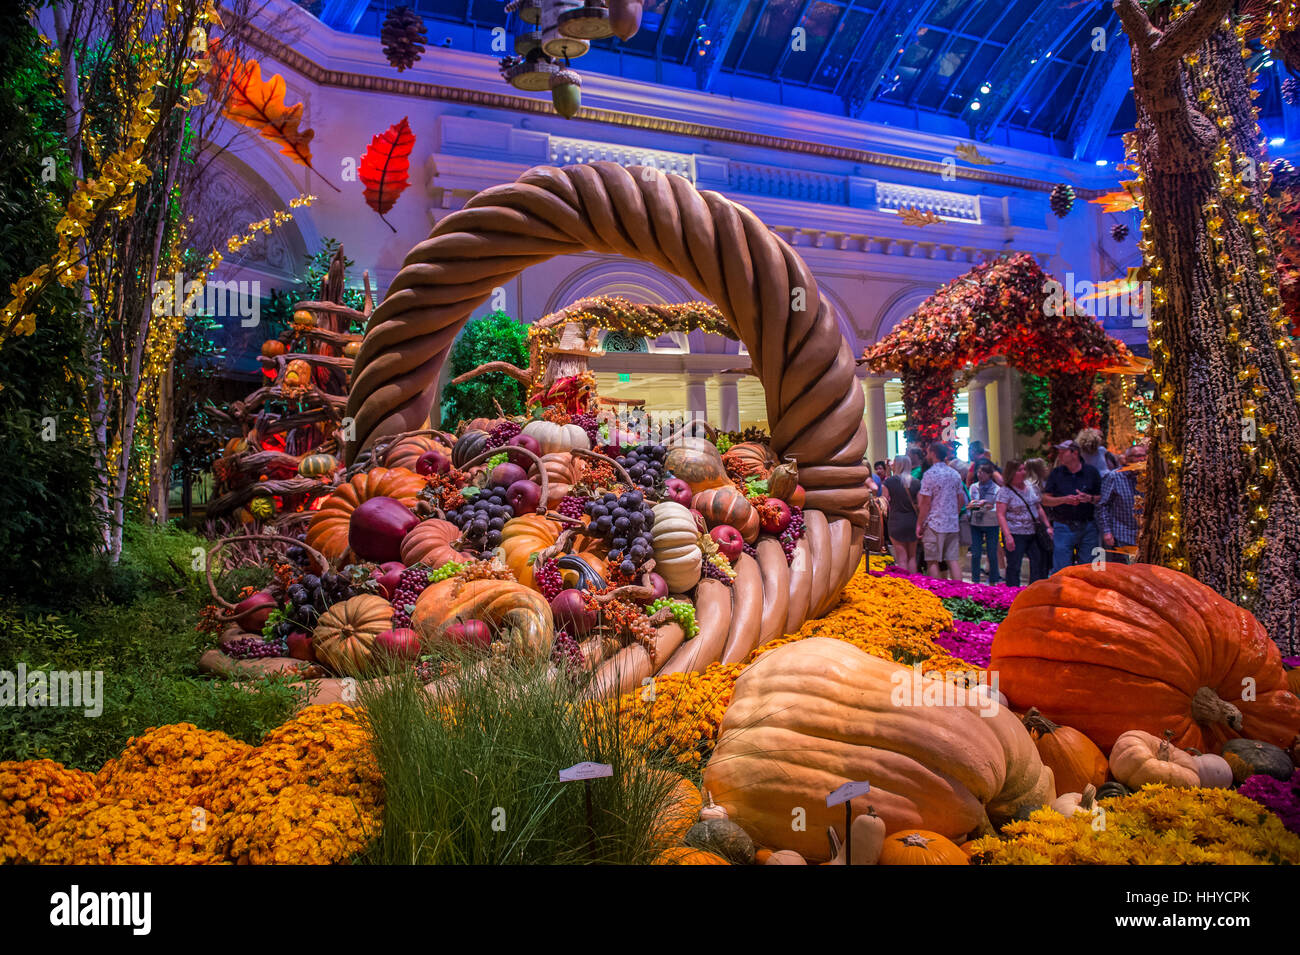 LAS VEGAS   OCT 05 : Fall Season In Bellagio Hotel Conservatory U0026 Botanical  Gardens On October 05 , 2016 In Las Vegas. There Are Five Seasonal Themes